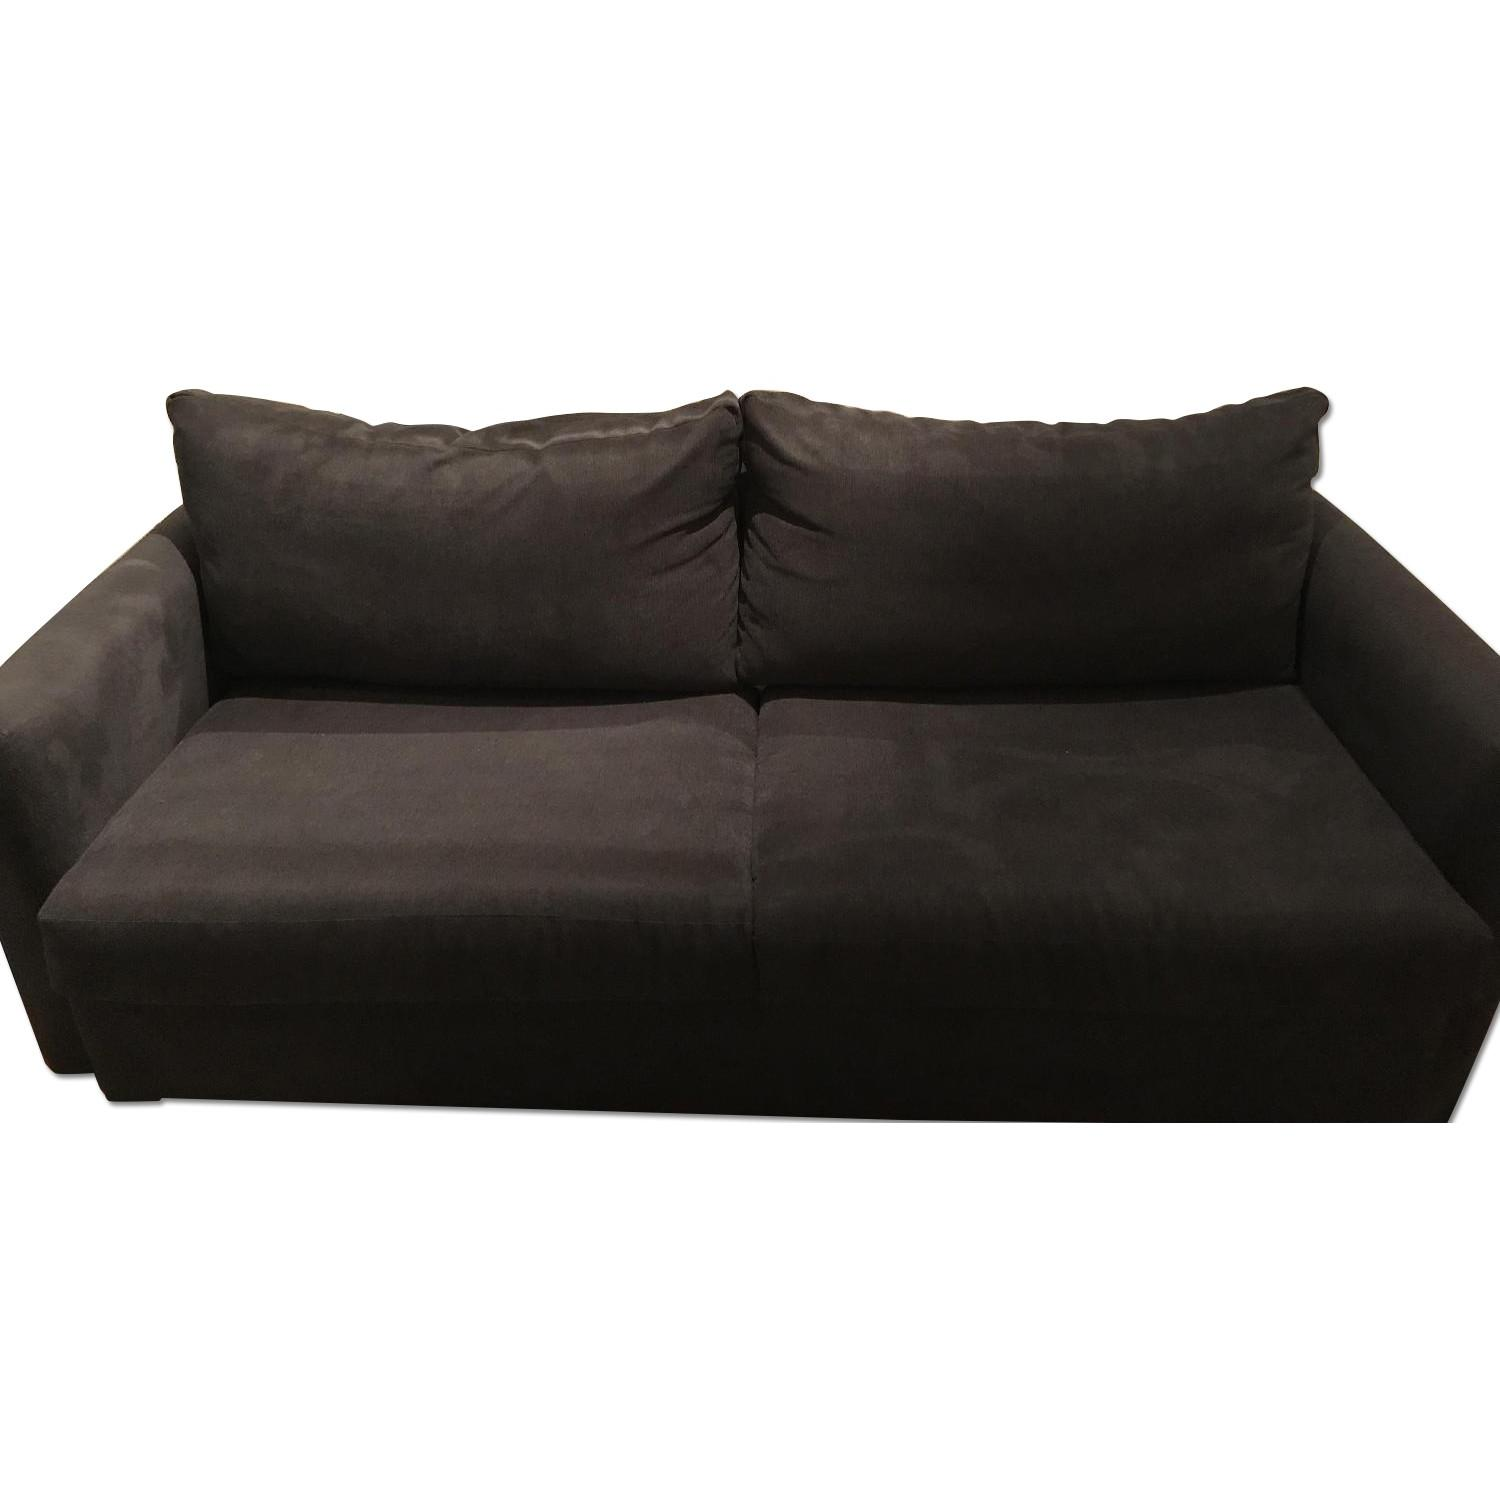 Bob S Heather Grey Queen Size Sleeper Sofa Aptdeco ~ Queen Sleeper Sofa Dimensions When Open